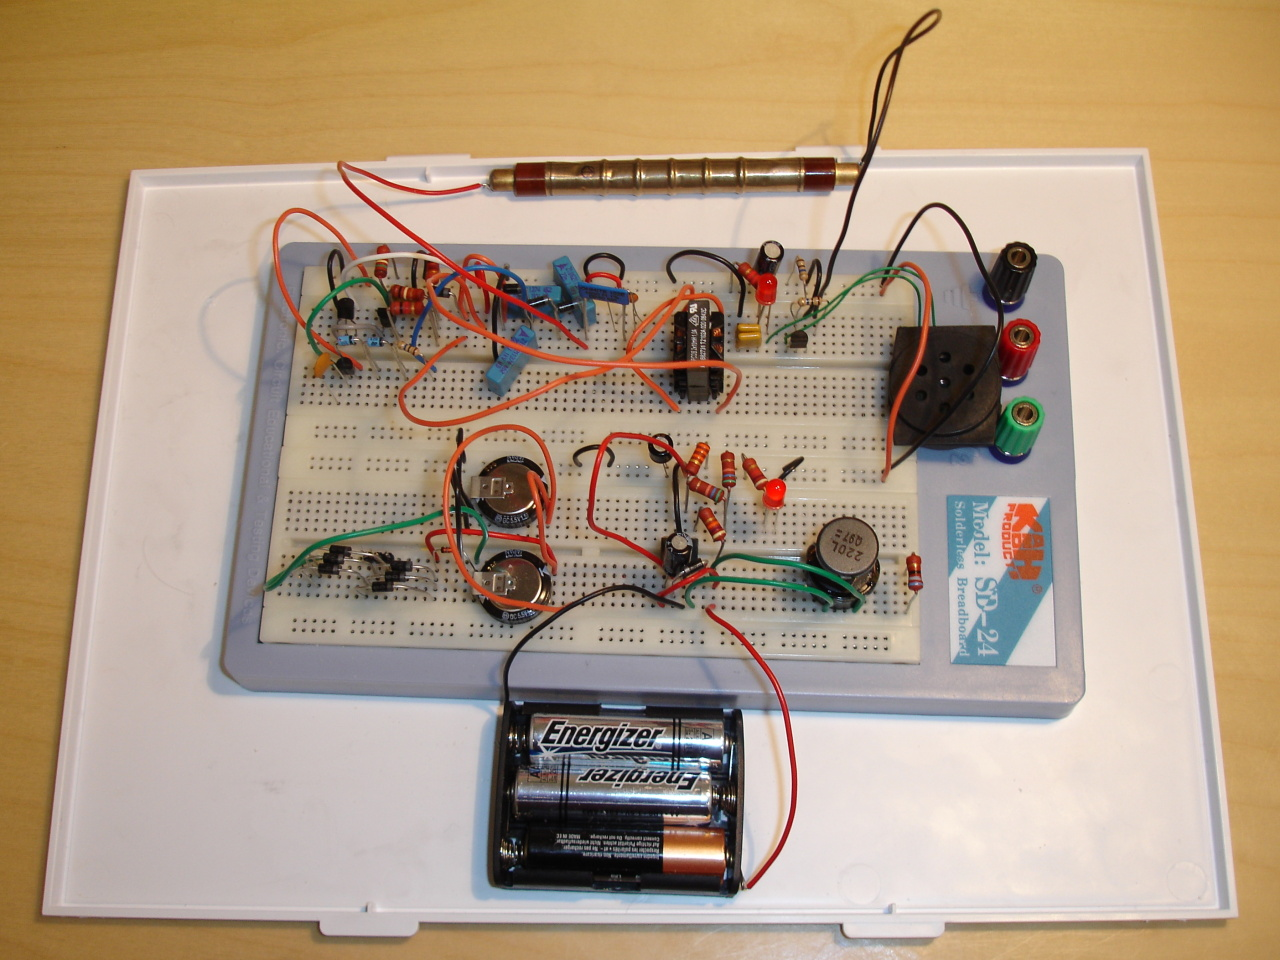 Indrek's Geiger counter project